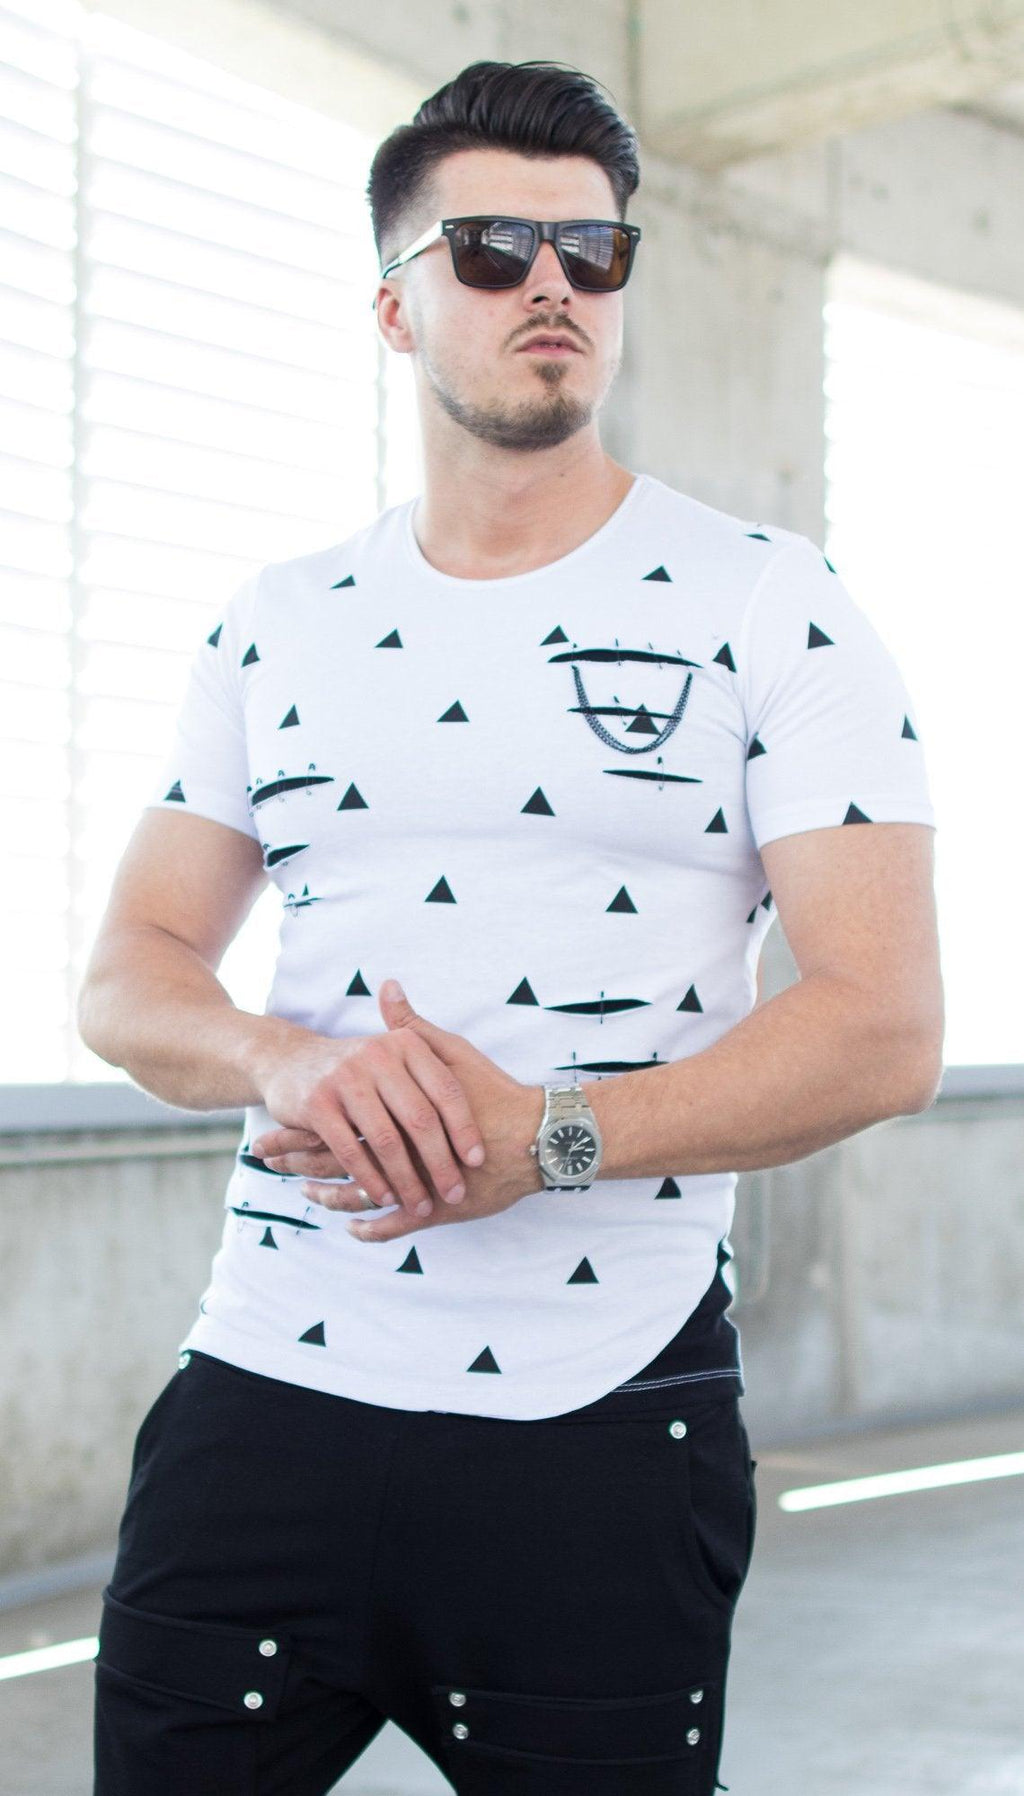 Tricou SHAPES - Alb - street-style-ro